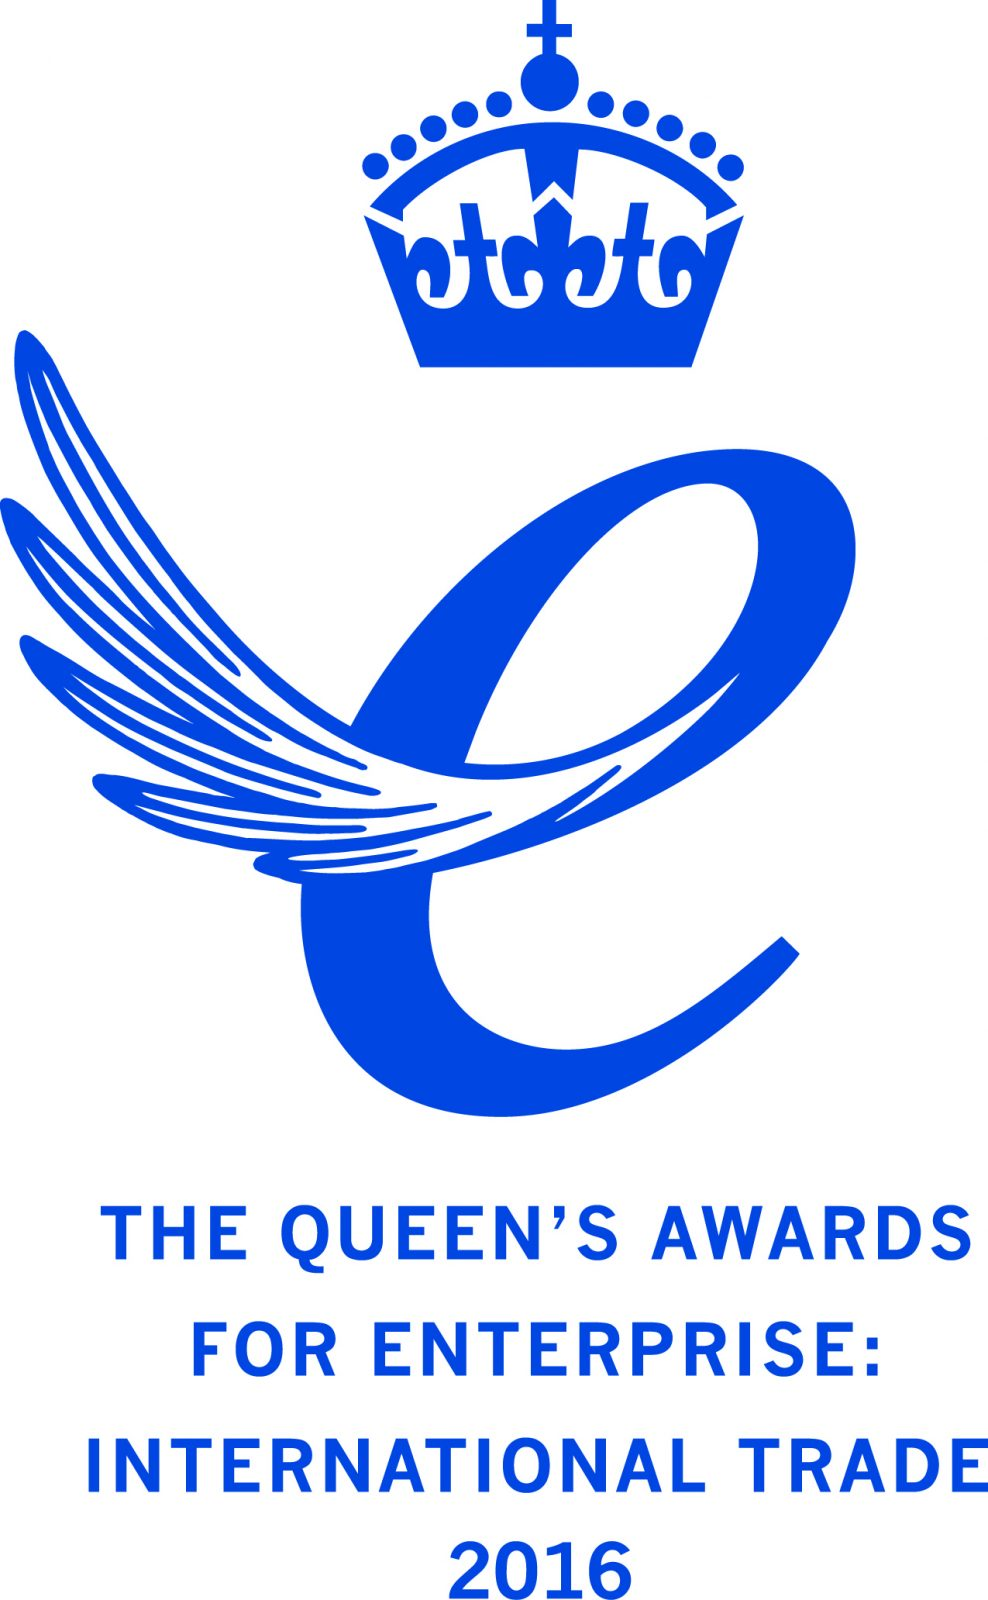 Queen's Award for Enterprise International Trade 2016 Emblem (1)